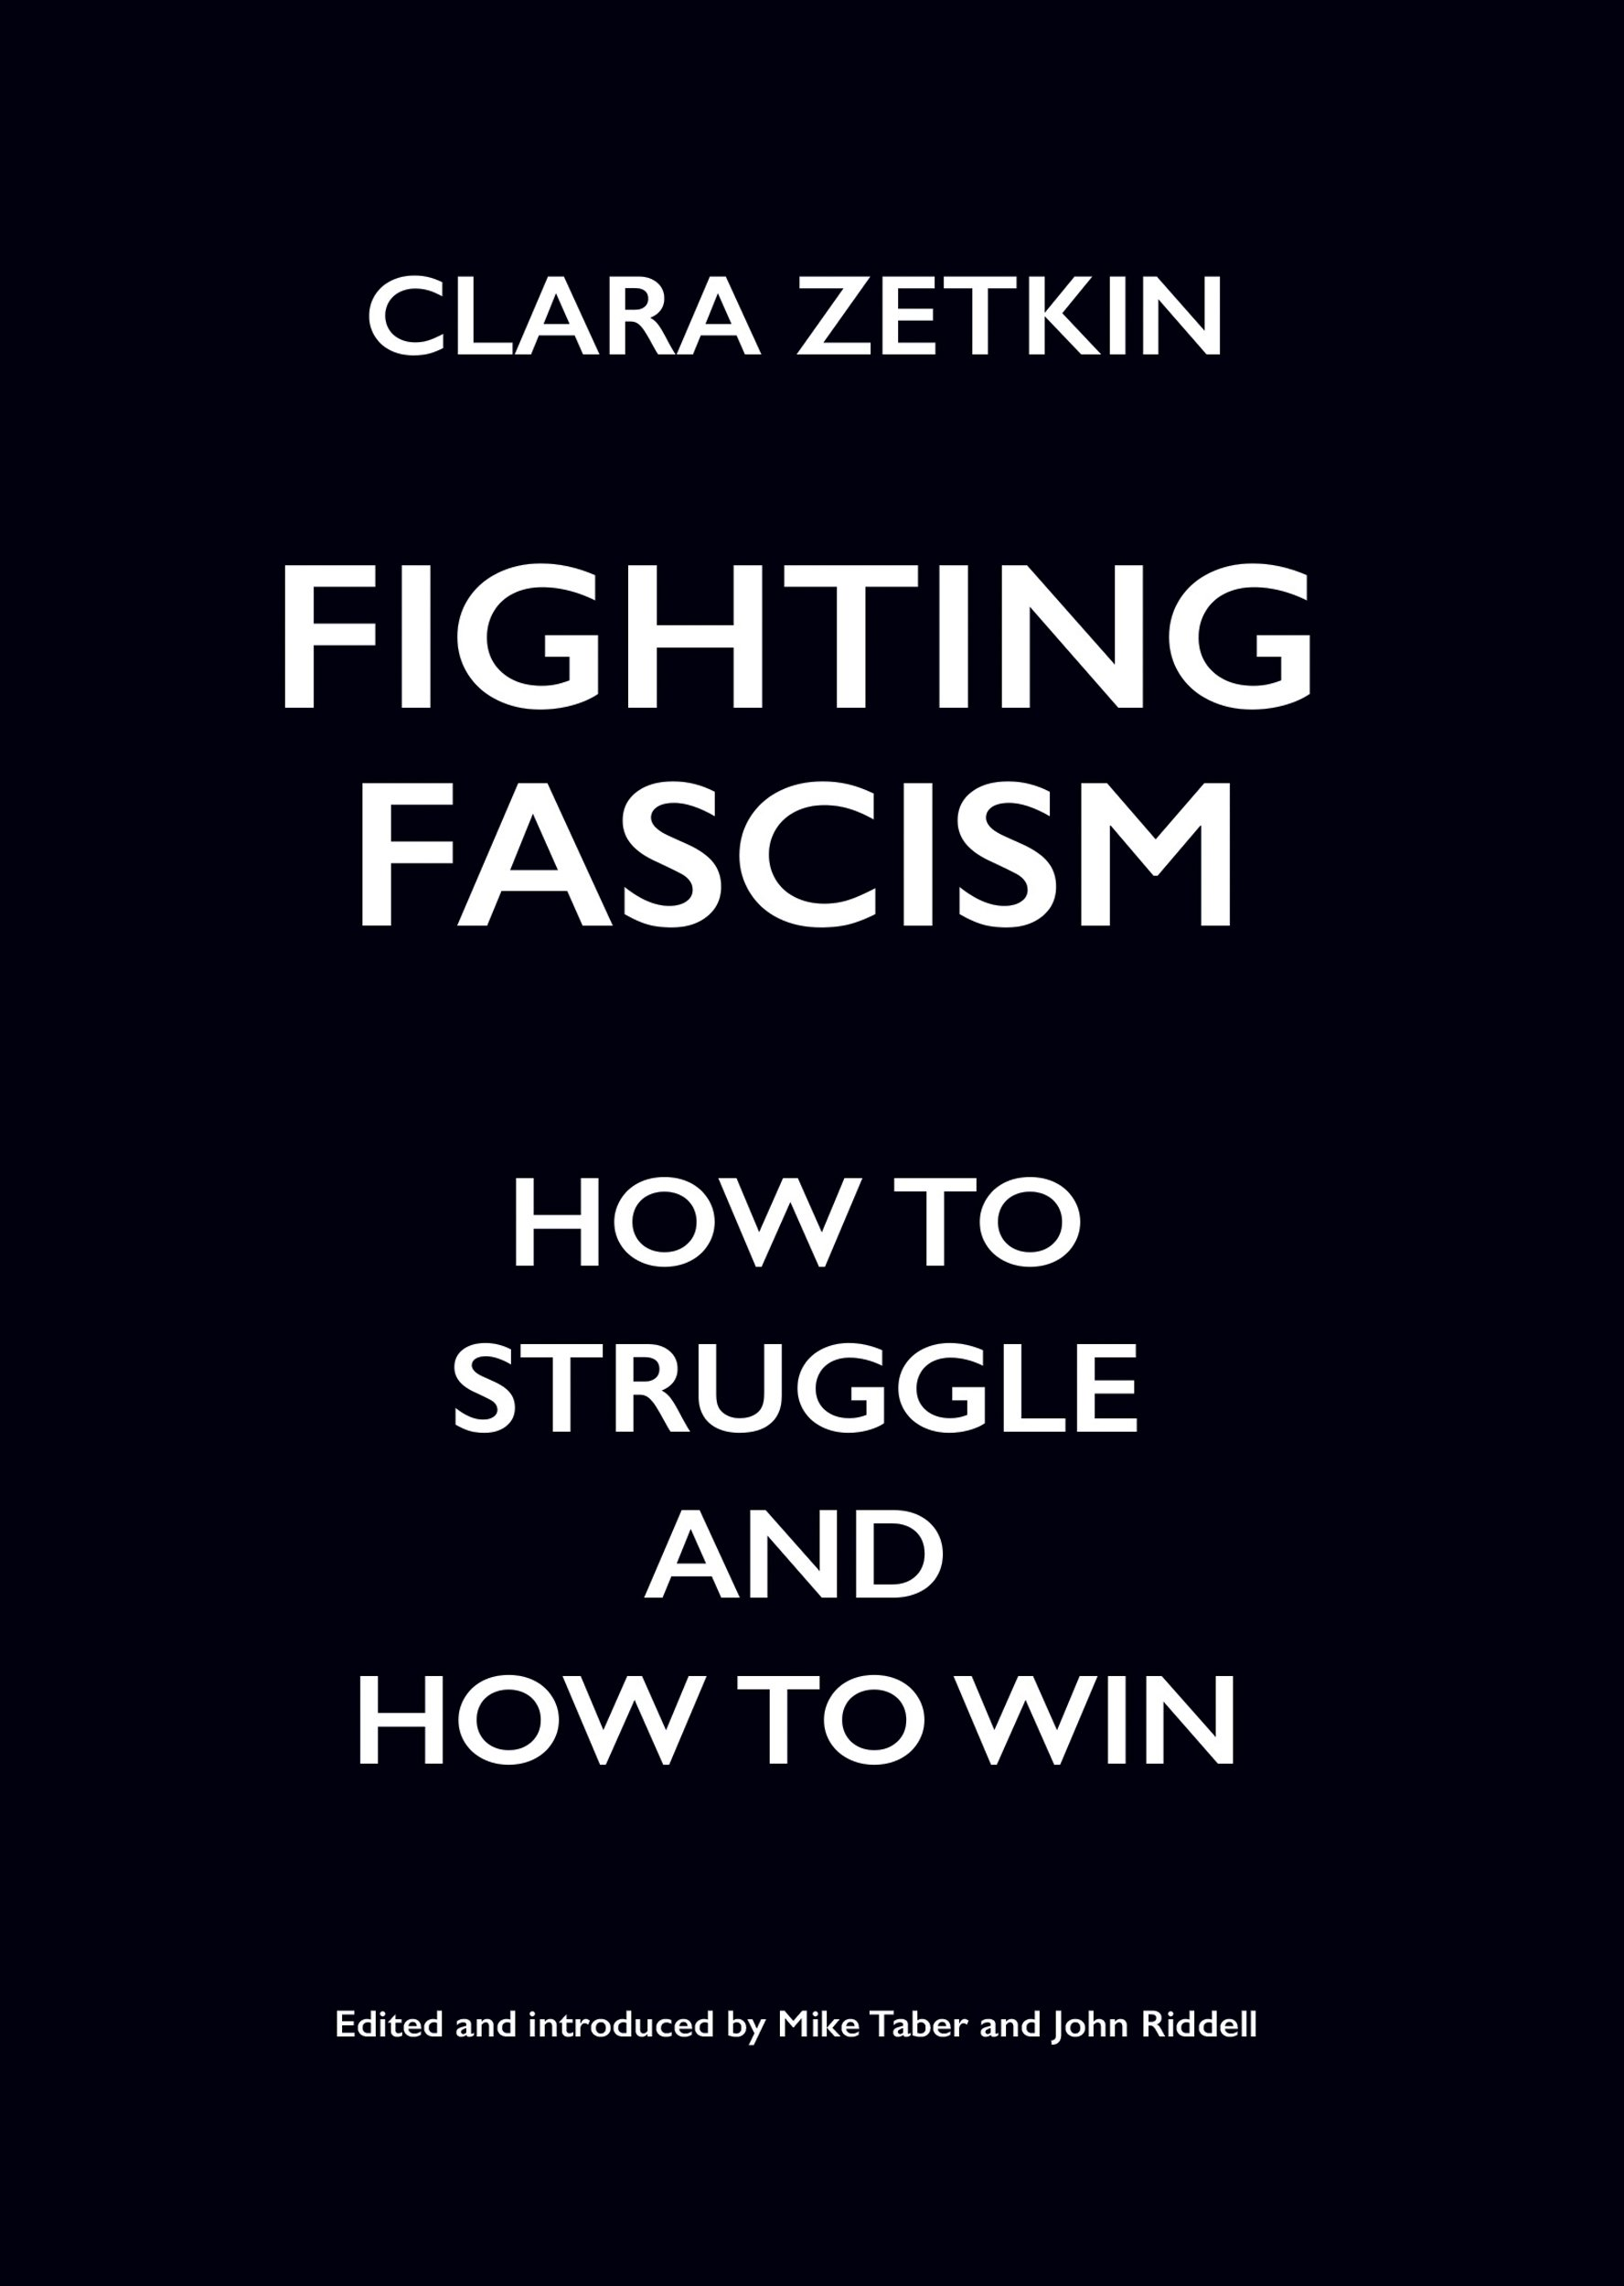 Amazon com: Fighting Fascism: How to Struggle and How to Win